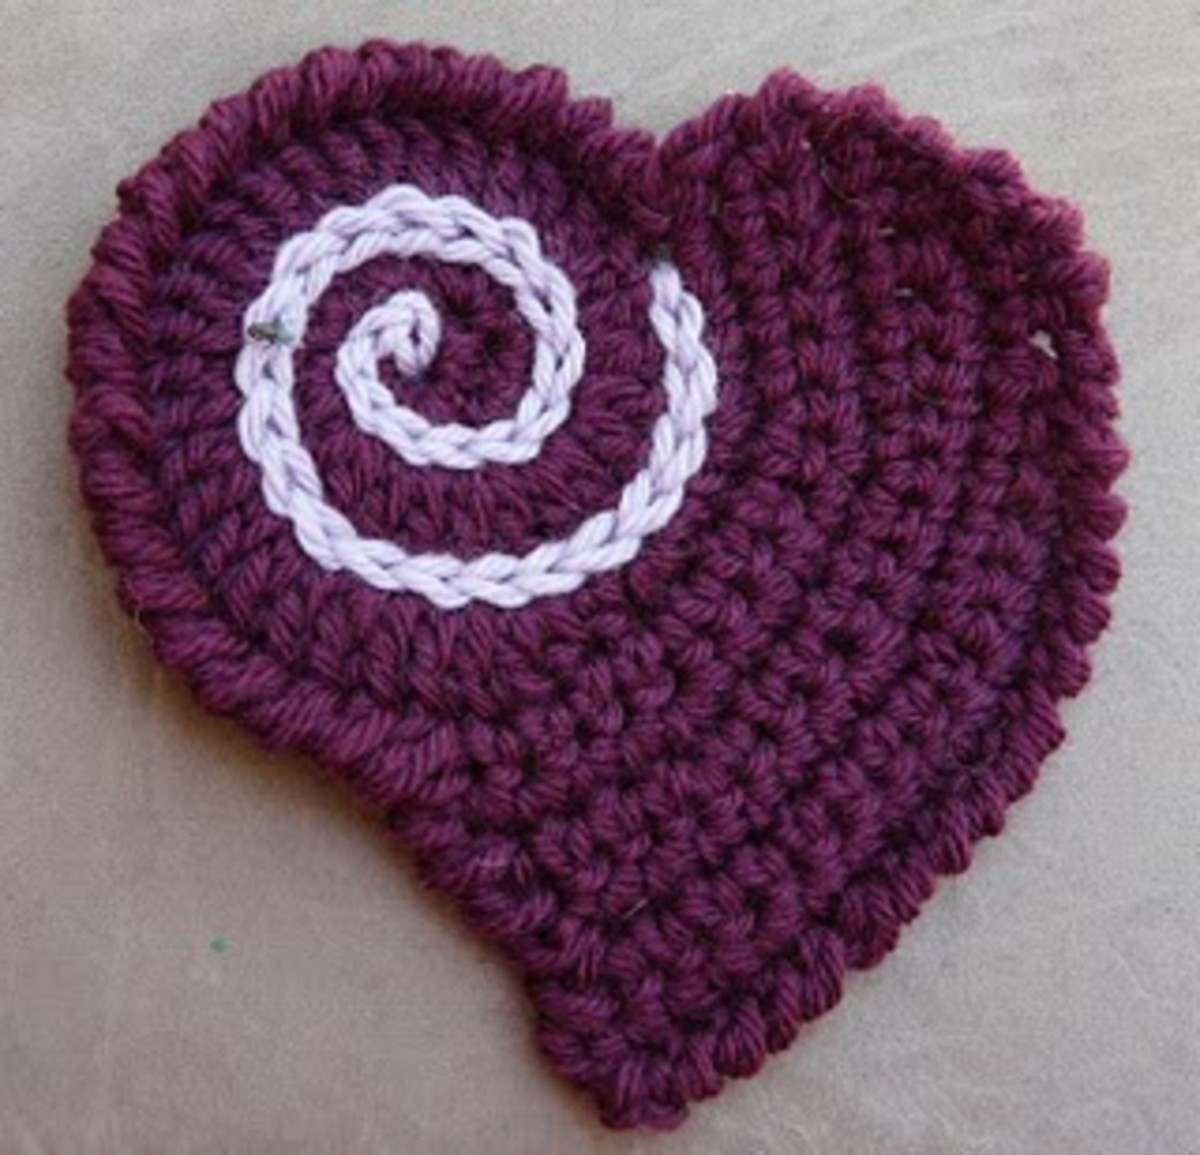 Crab Stitch Edged Heart by Julie -  This heart is part of free pattern from Caron called TEEN THROW taken from Twisted Strands Blog